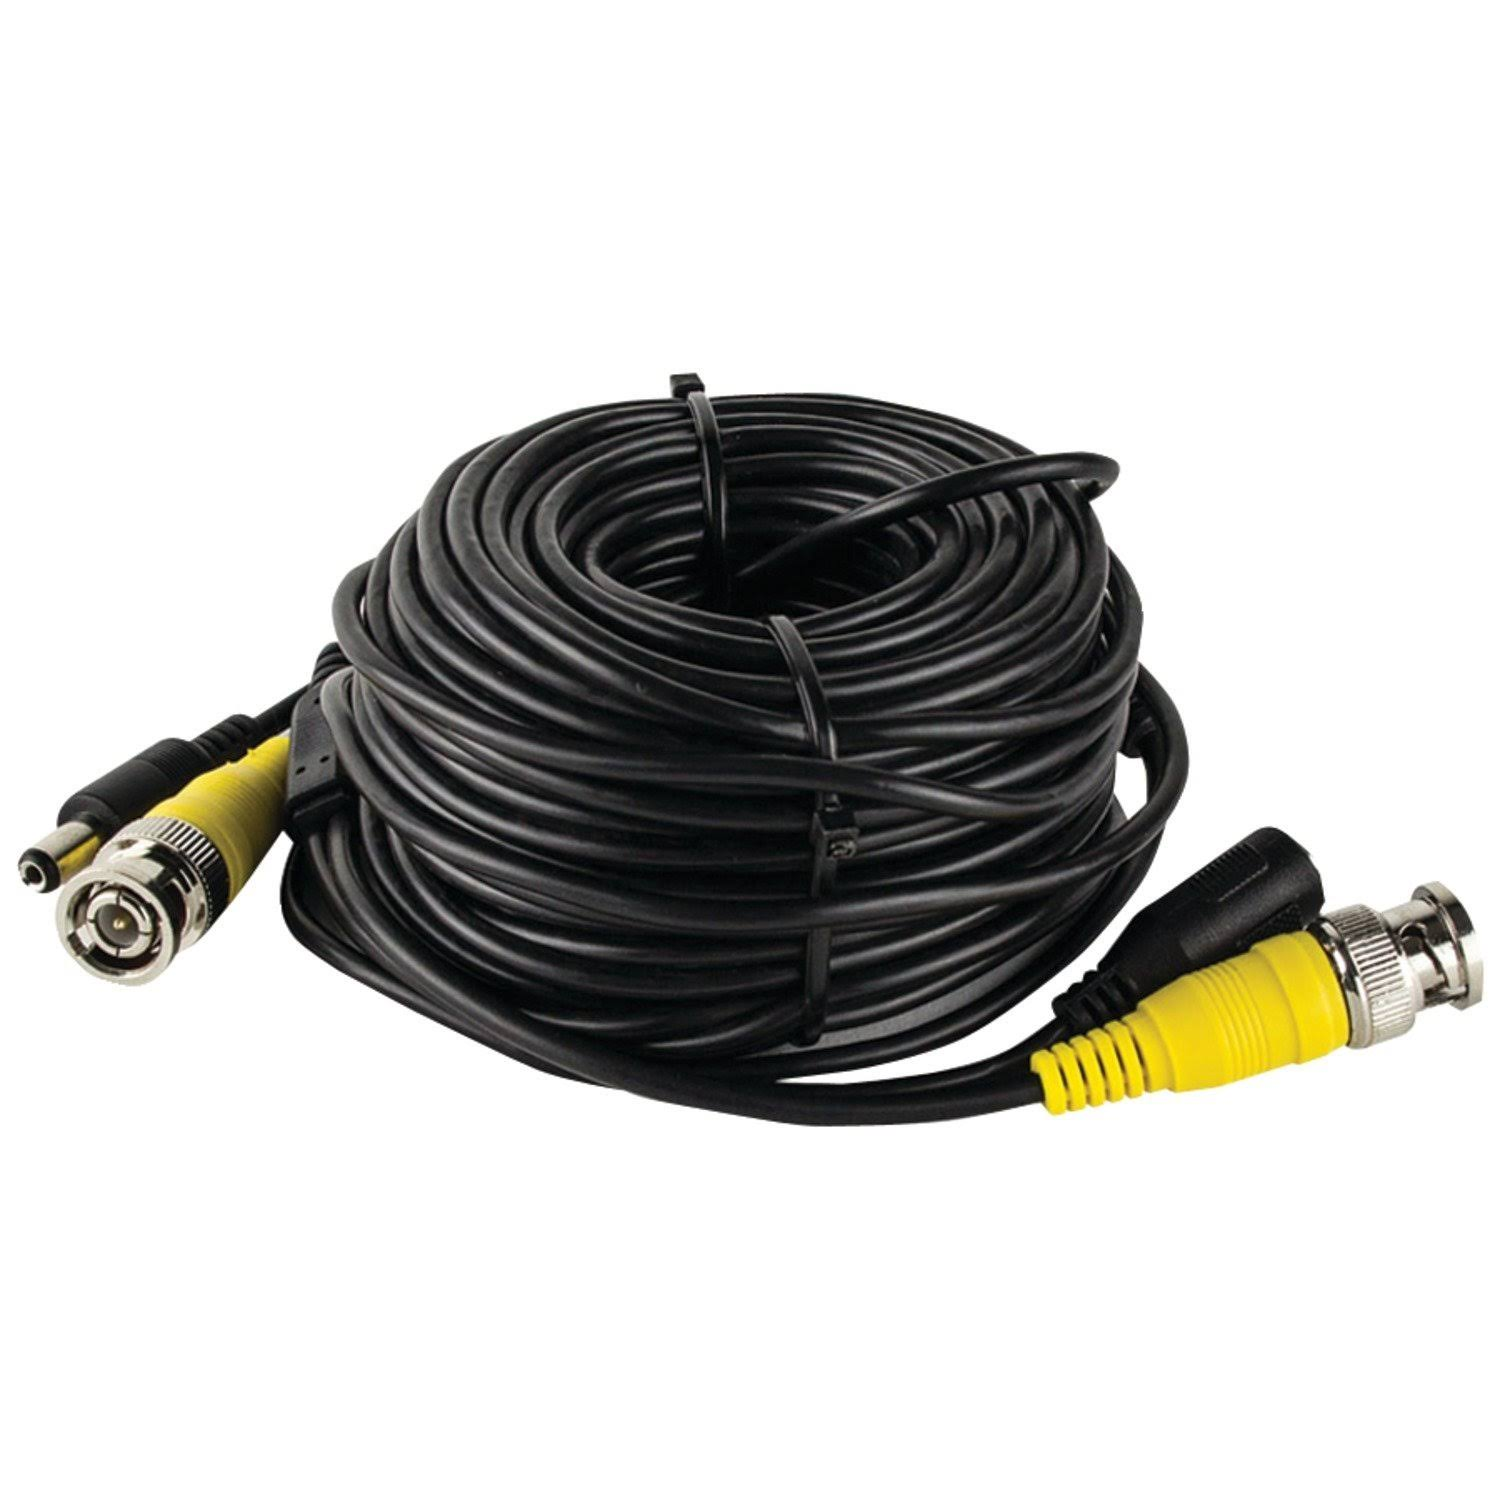 Ethereal SPY-20MBNCDC BNC Video Cable - 12V, 20m